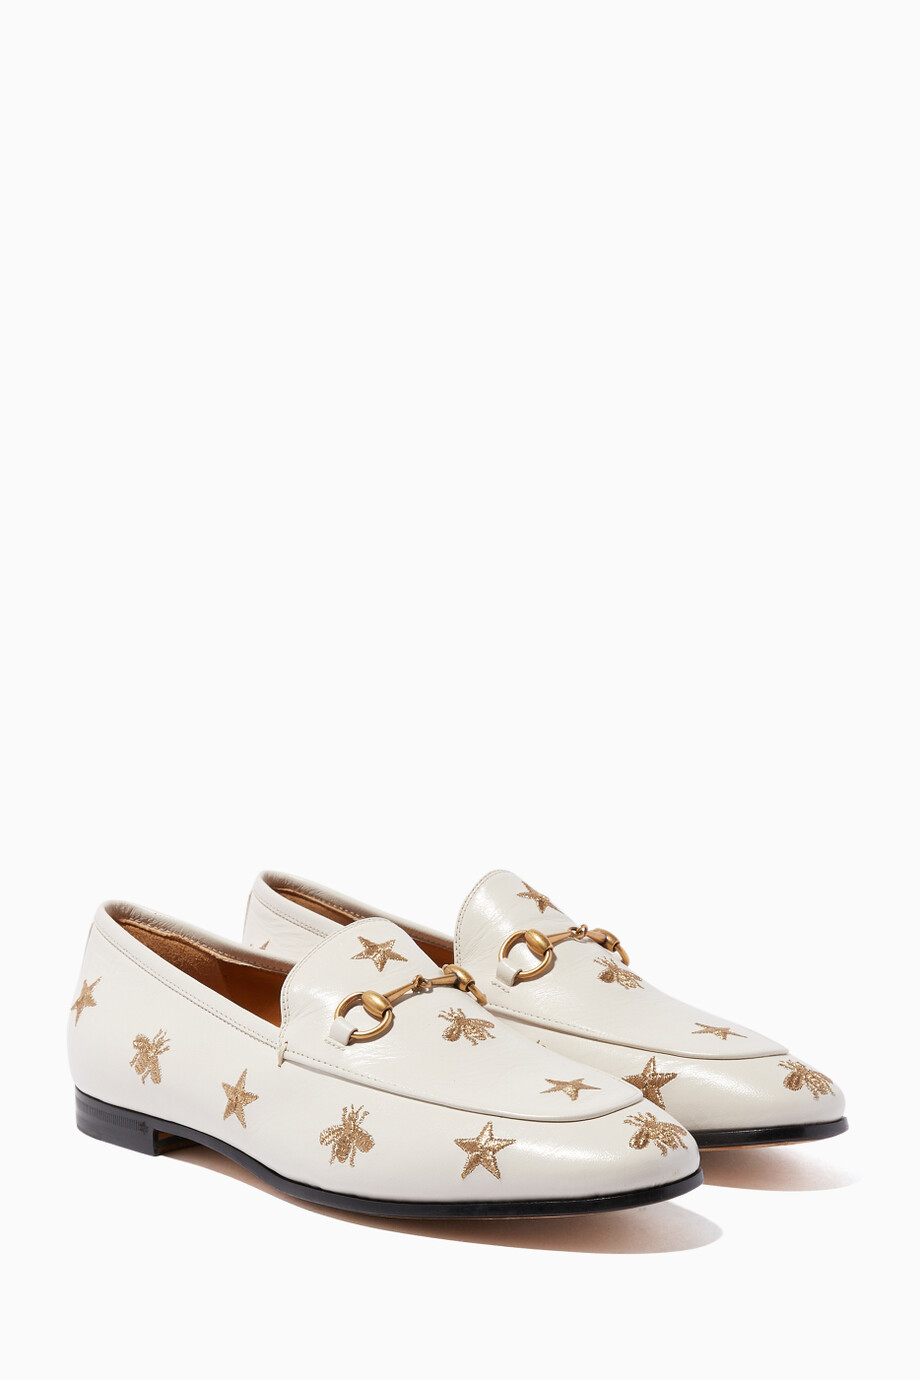 c143b57b576 Shop Gucci Neutral Gucci Jordaan Embroidered Leather Loafers for ...